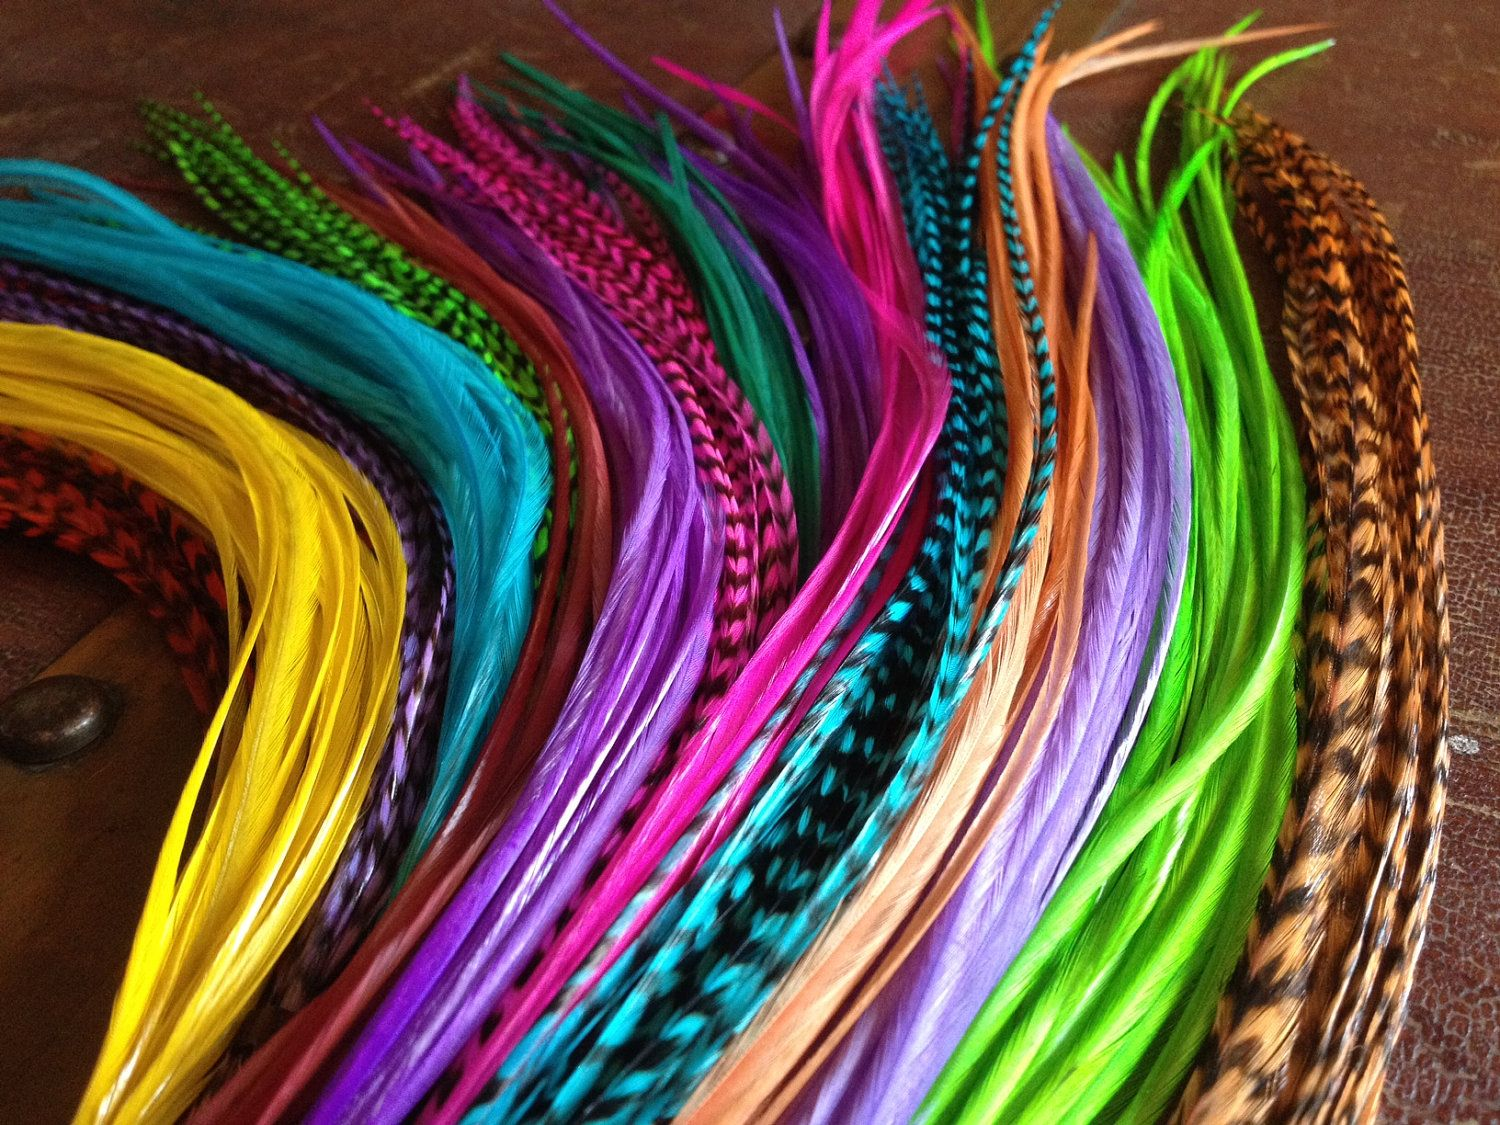 Do it yourself accessories googleda ara i can pinterest do it yourself accessories googleda ara feather extensionshair solutioingenieria Image collections